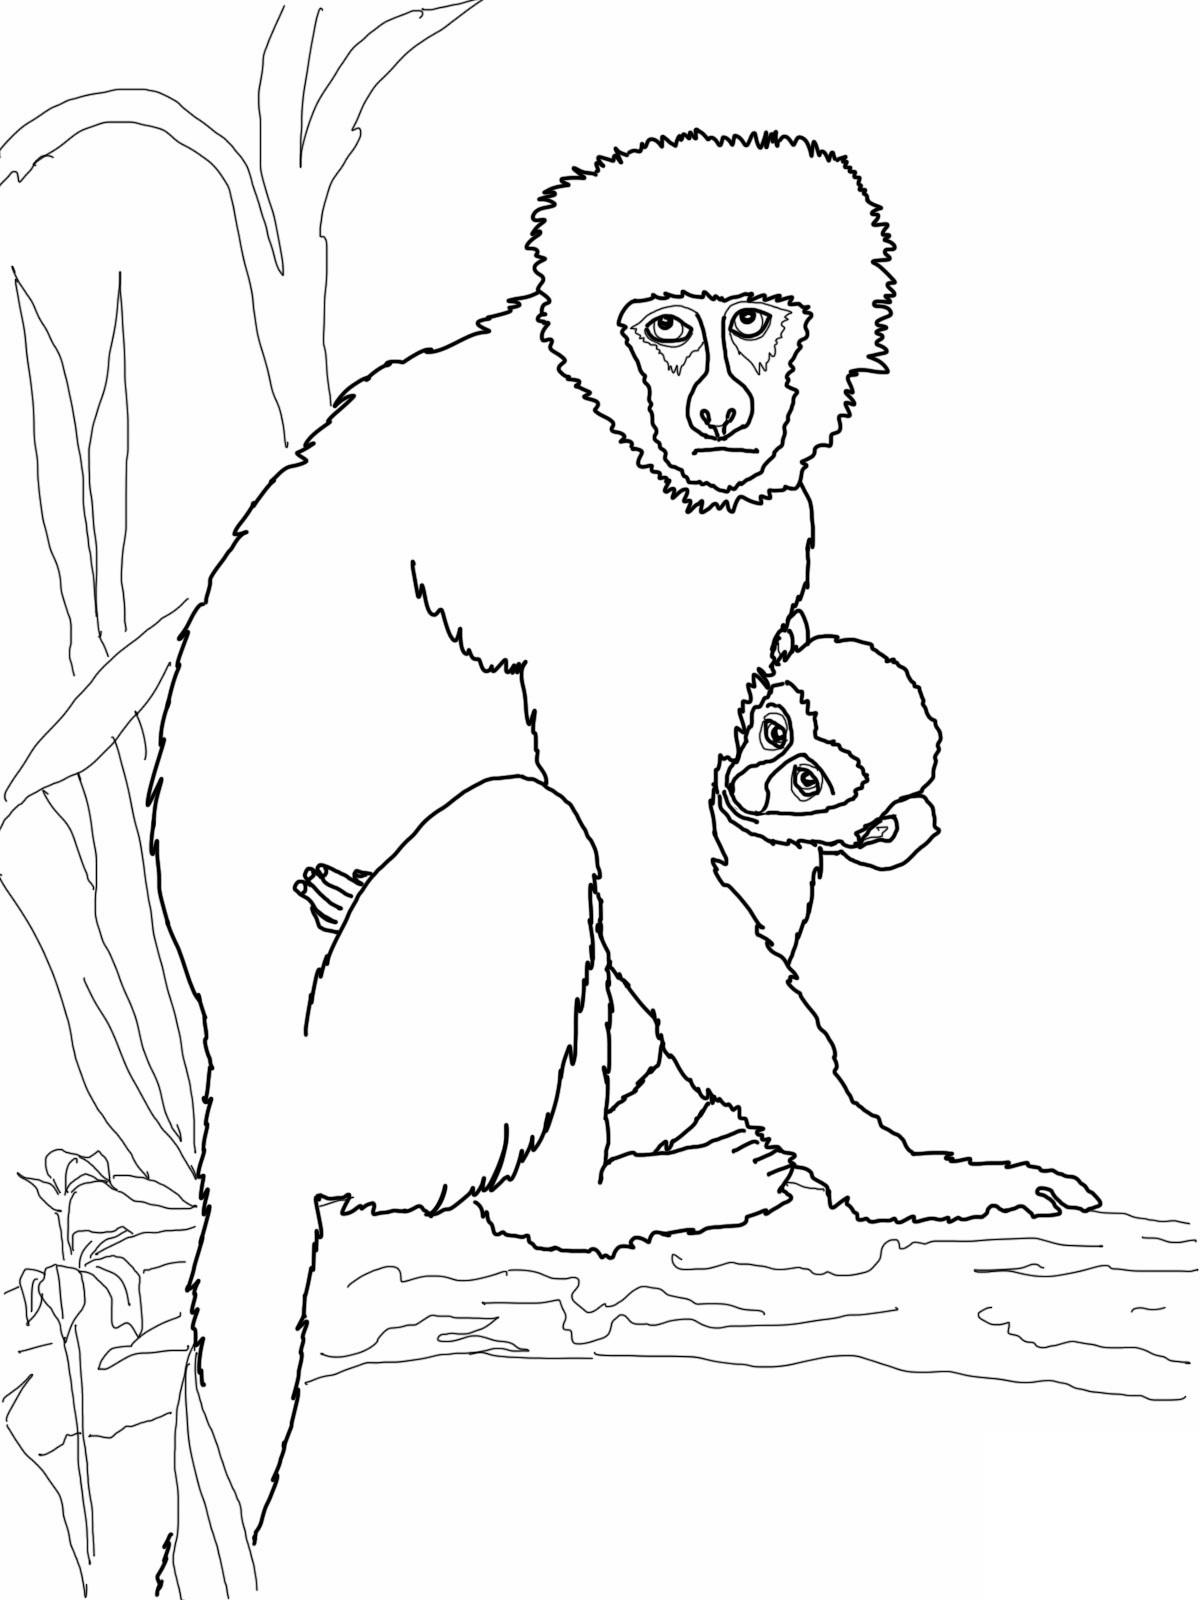 Howler Monkey coloring #17, Download drawings